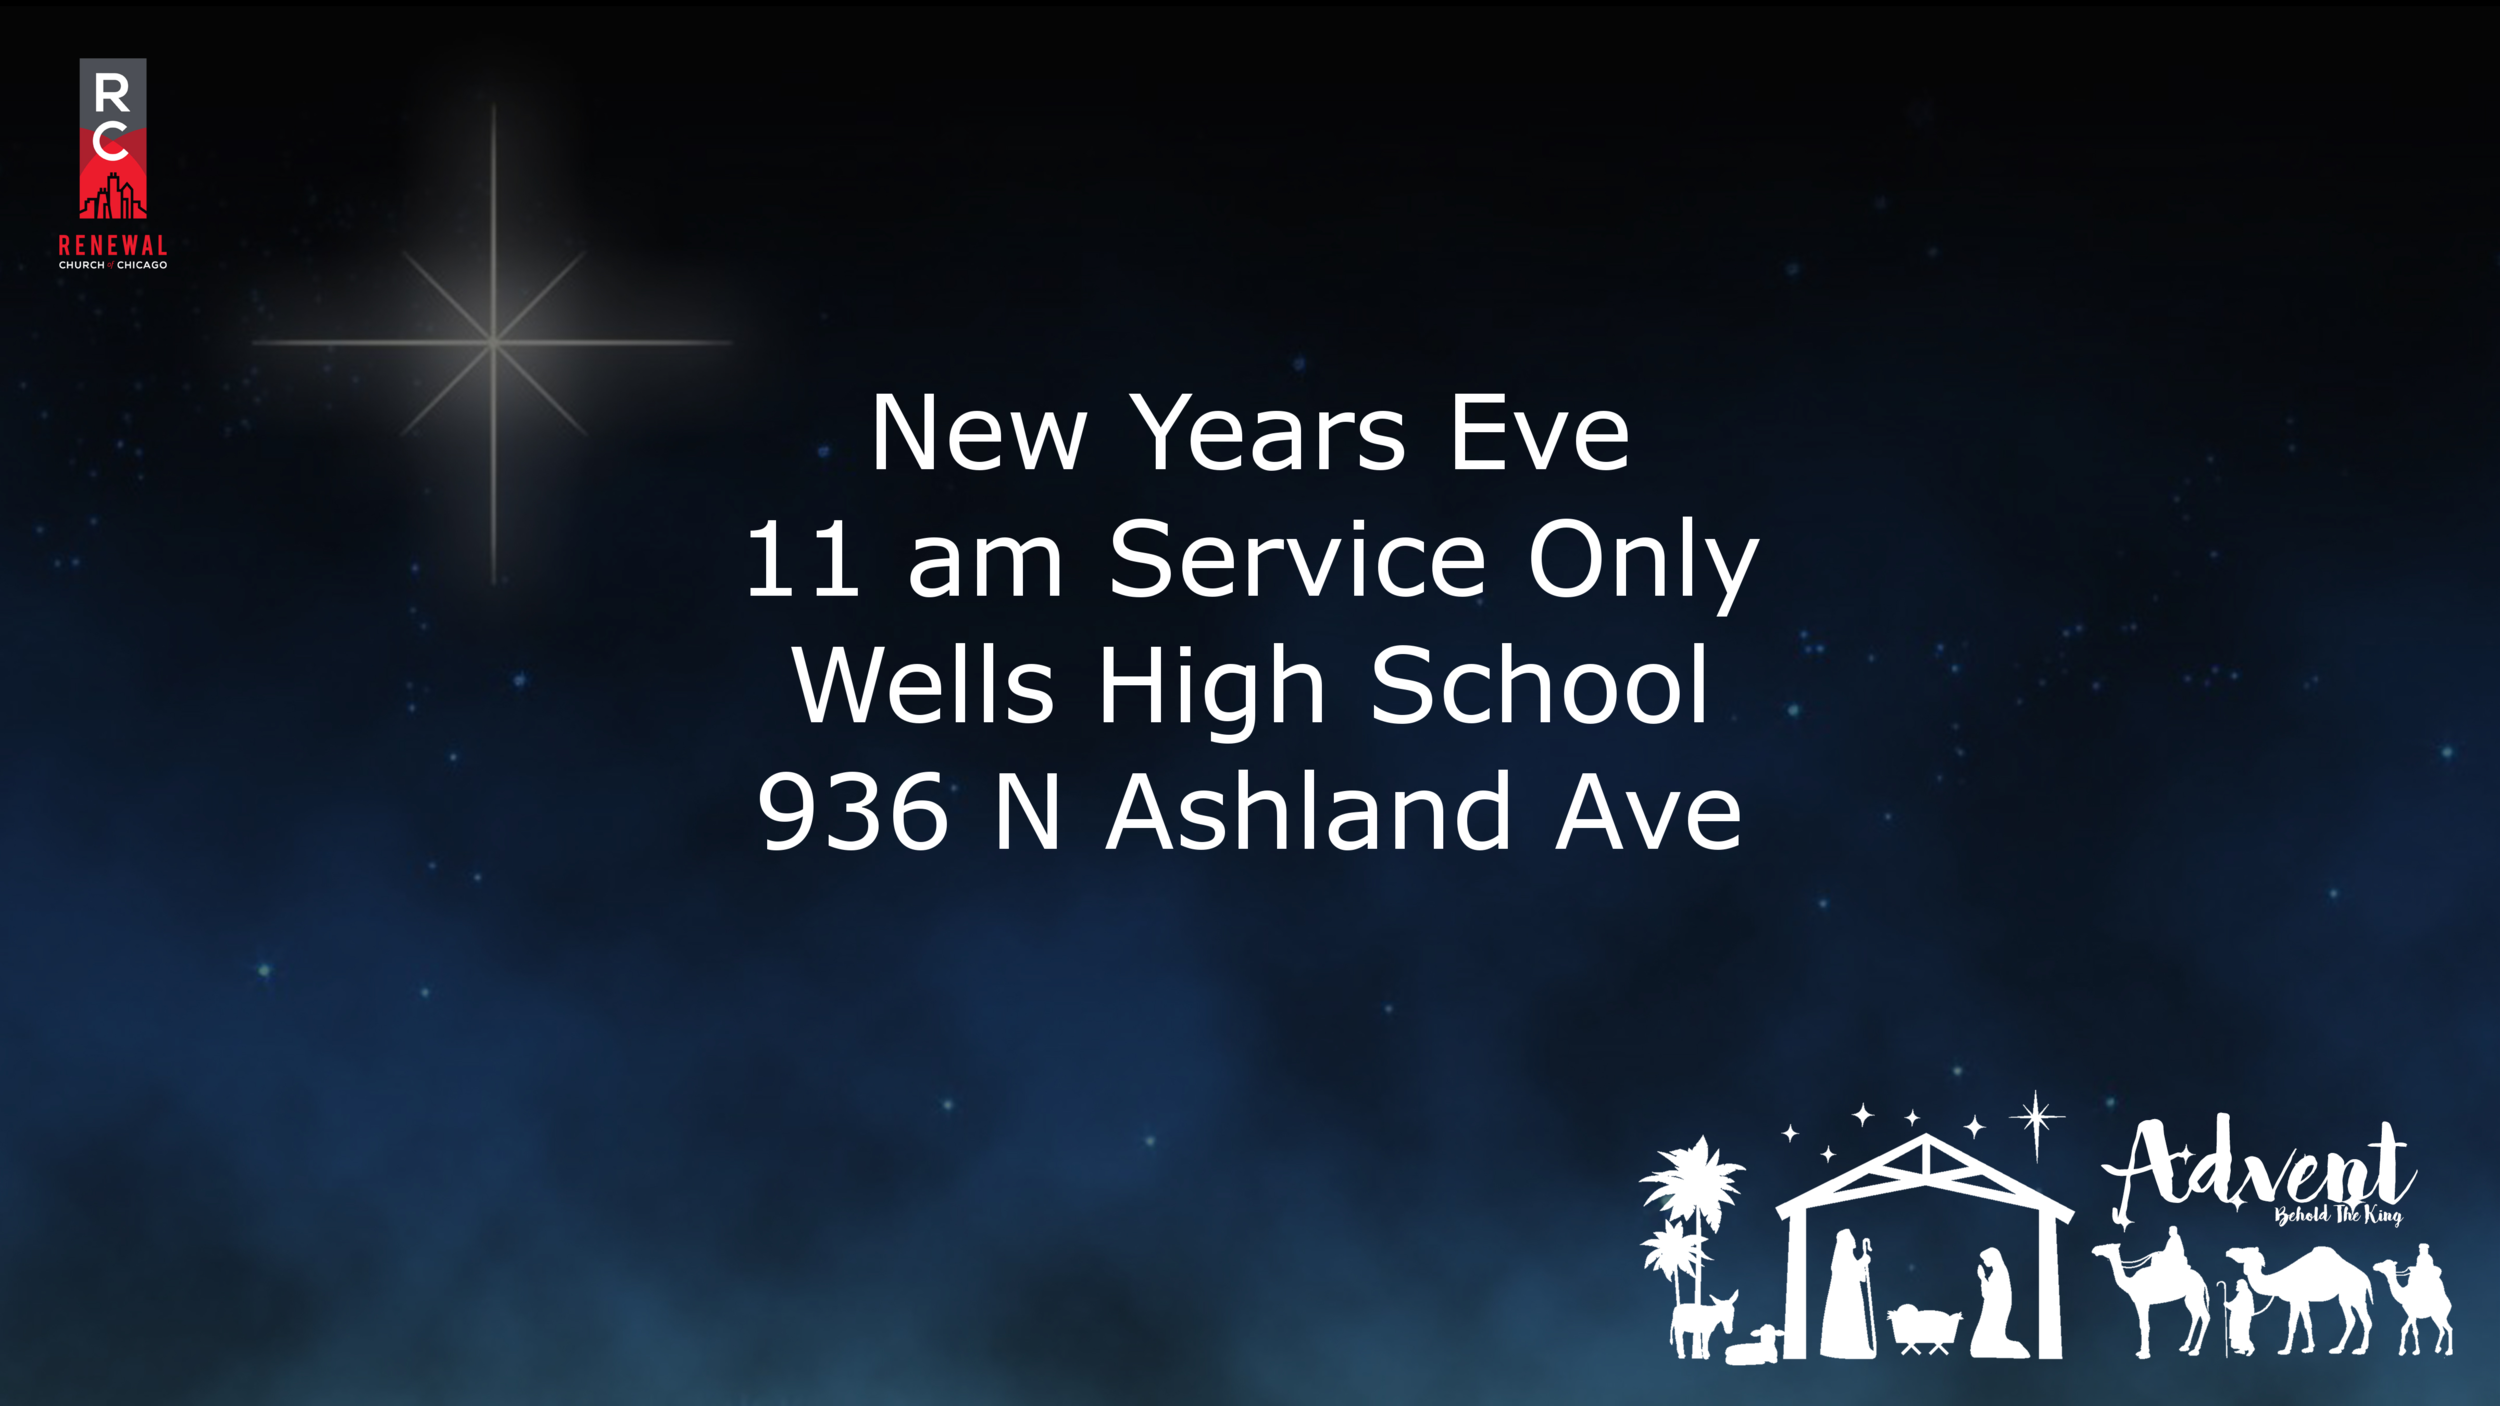 Join Renewal this New Years Eve! We will be celebrating with only one service at 11 am.  After service join us for brunch at Wells!